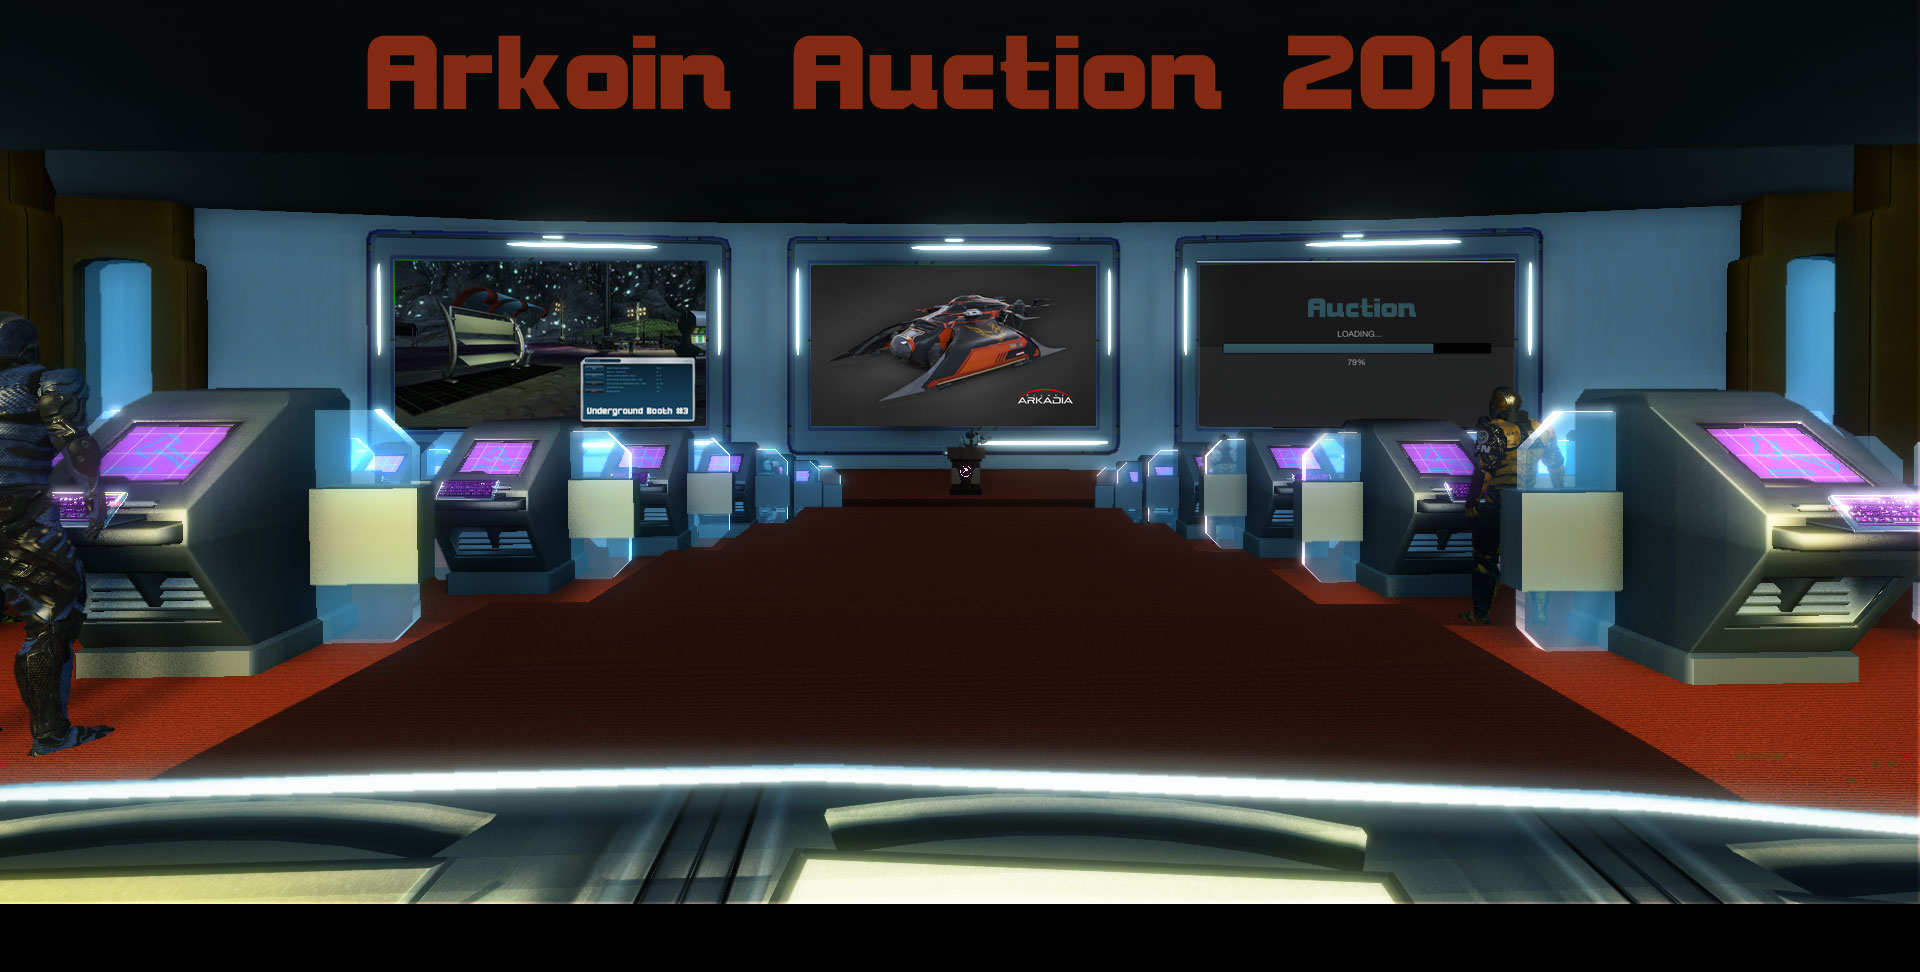 arkoinauction.jpg